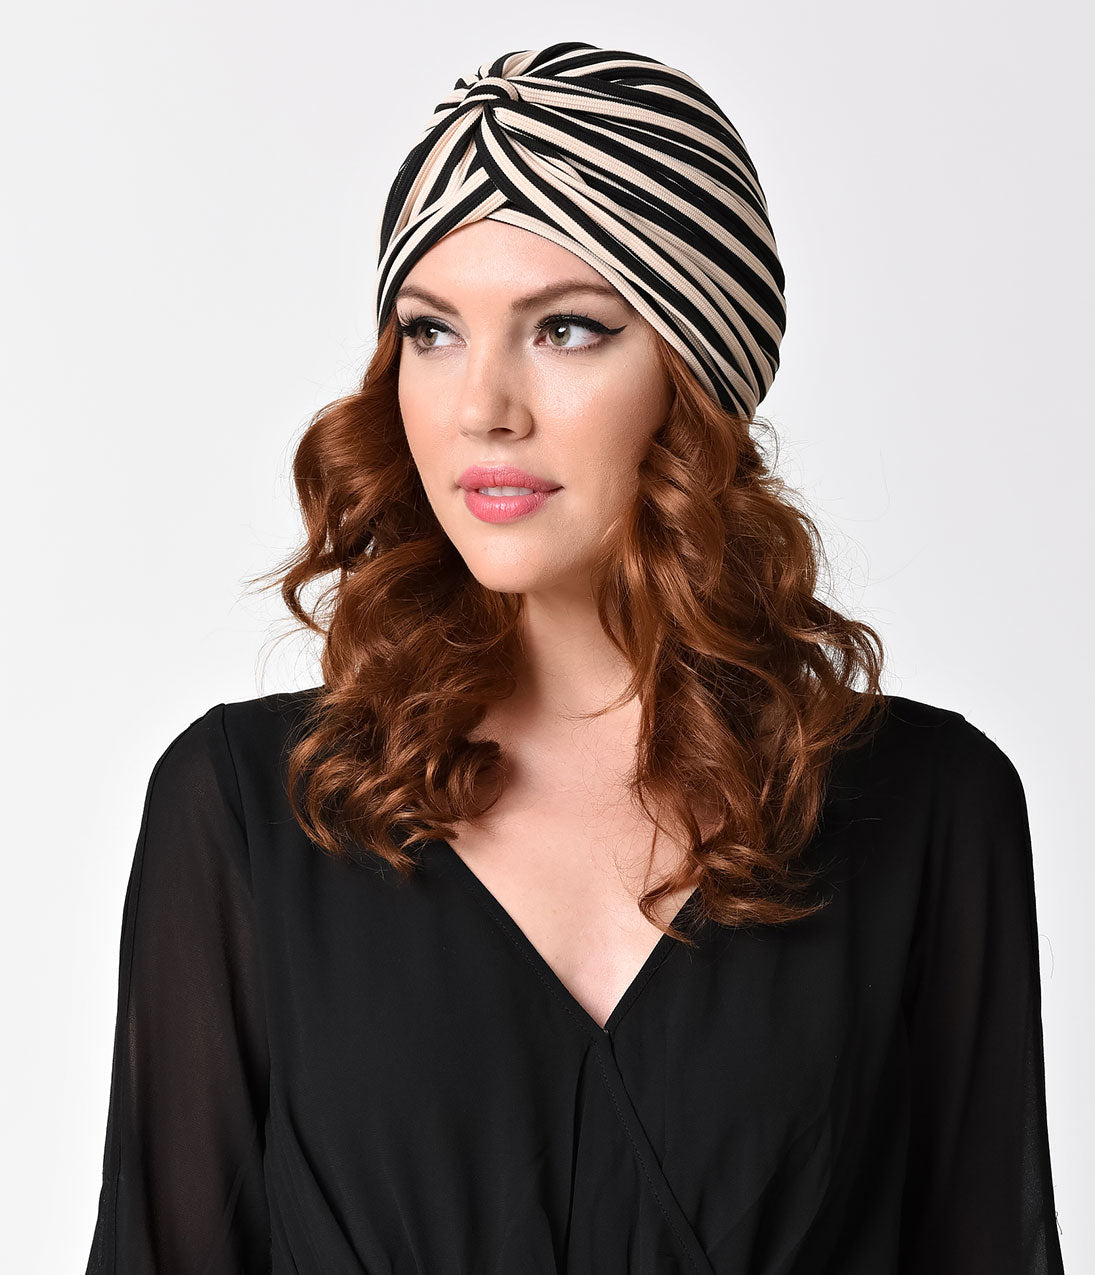 1920s Flapper Headband, Gatsby Headpiece, Wigs Vintage Syle Black  Tan Striped Knotted Turban $14.00 AT vintagedancer.com